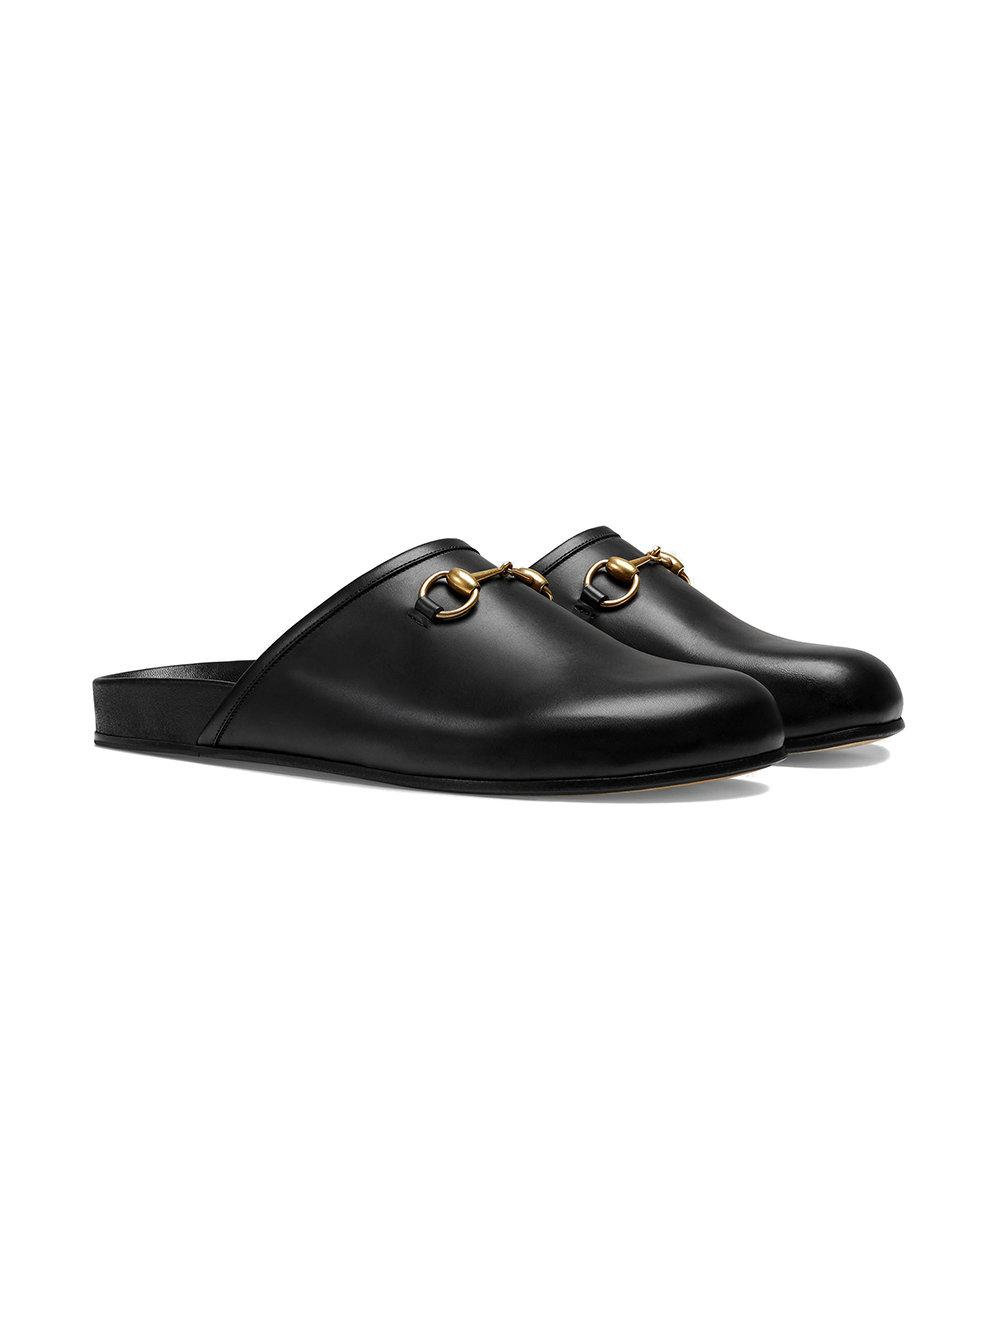 d15e88837bd Lyst - Gucci Horsebit Leather Slippers in Black for Men - Save 26%